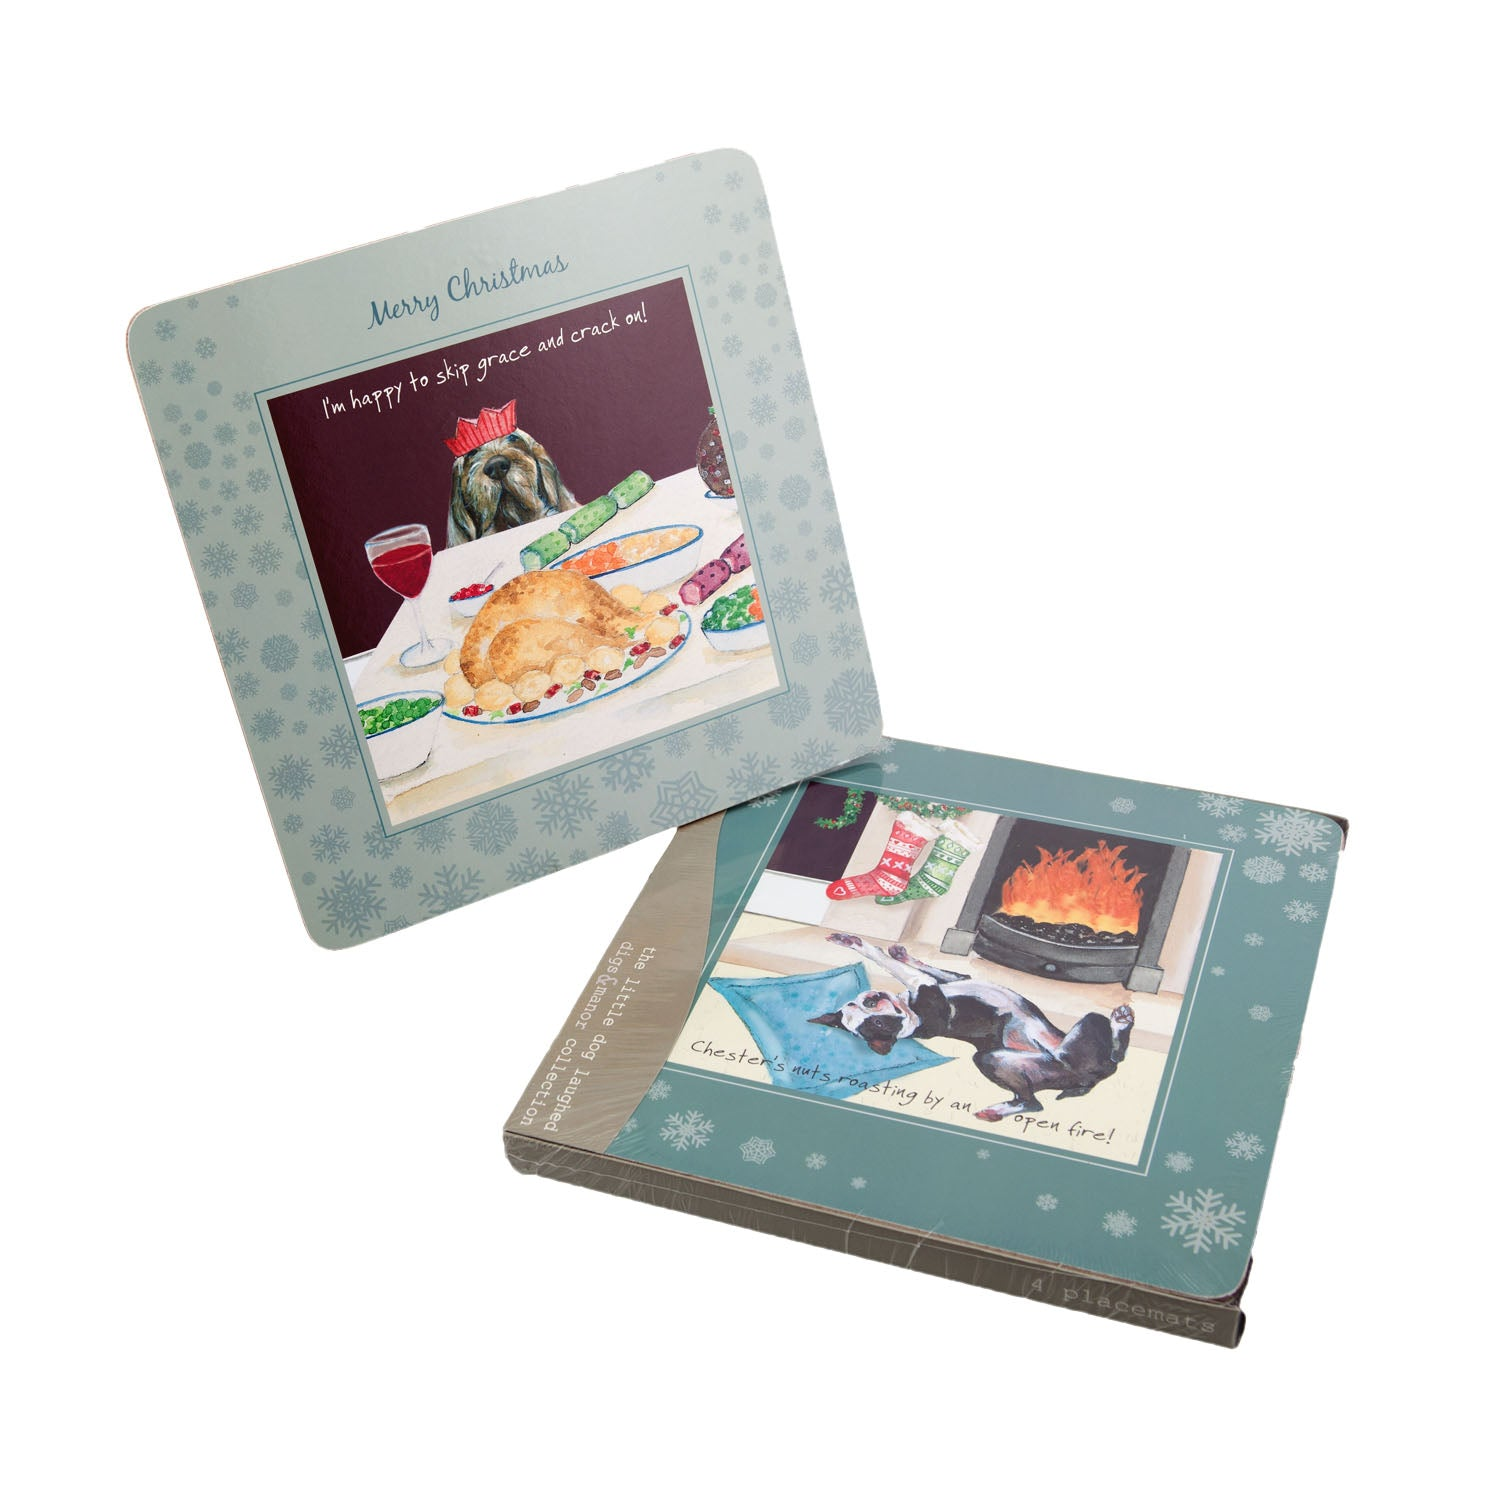 DogKrazyGifts - digs and manor Christmas Placemat Set - part of the Little Dog Range available from Dog Krazy Gifts